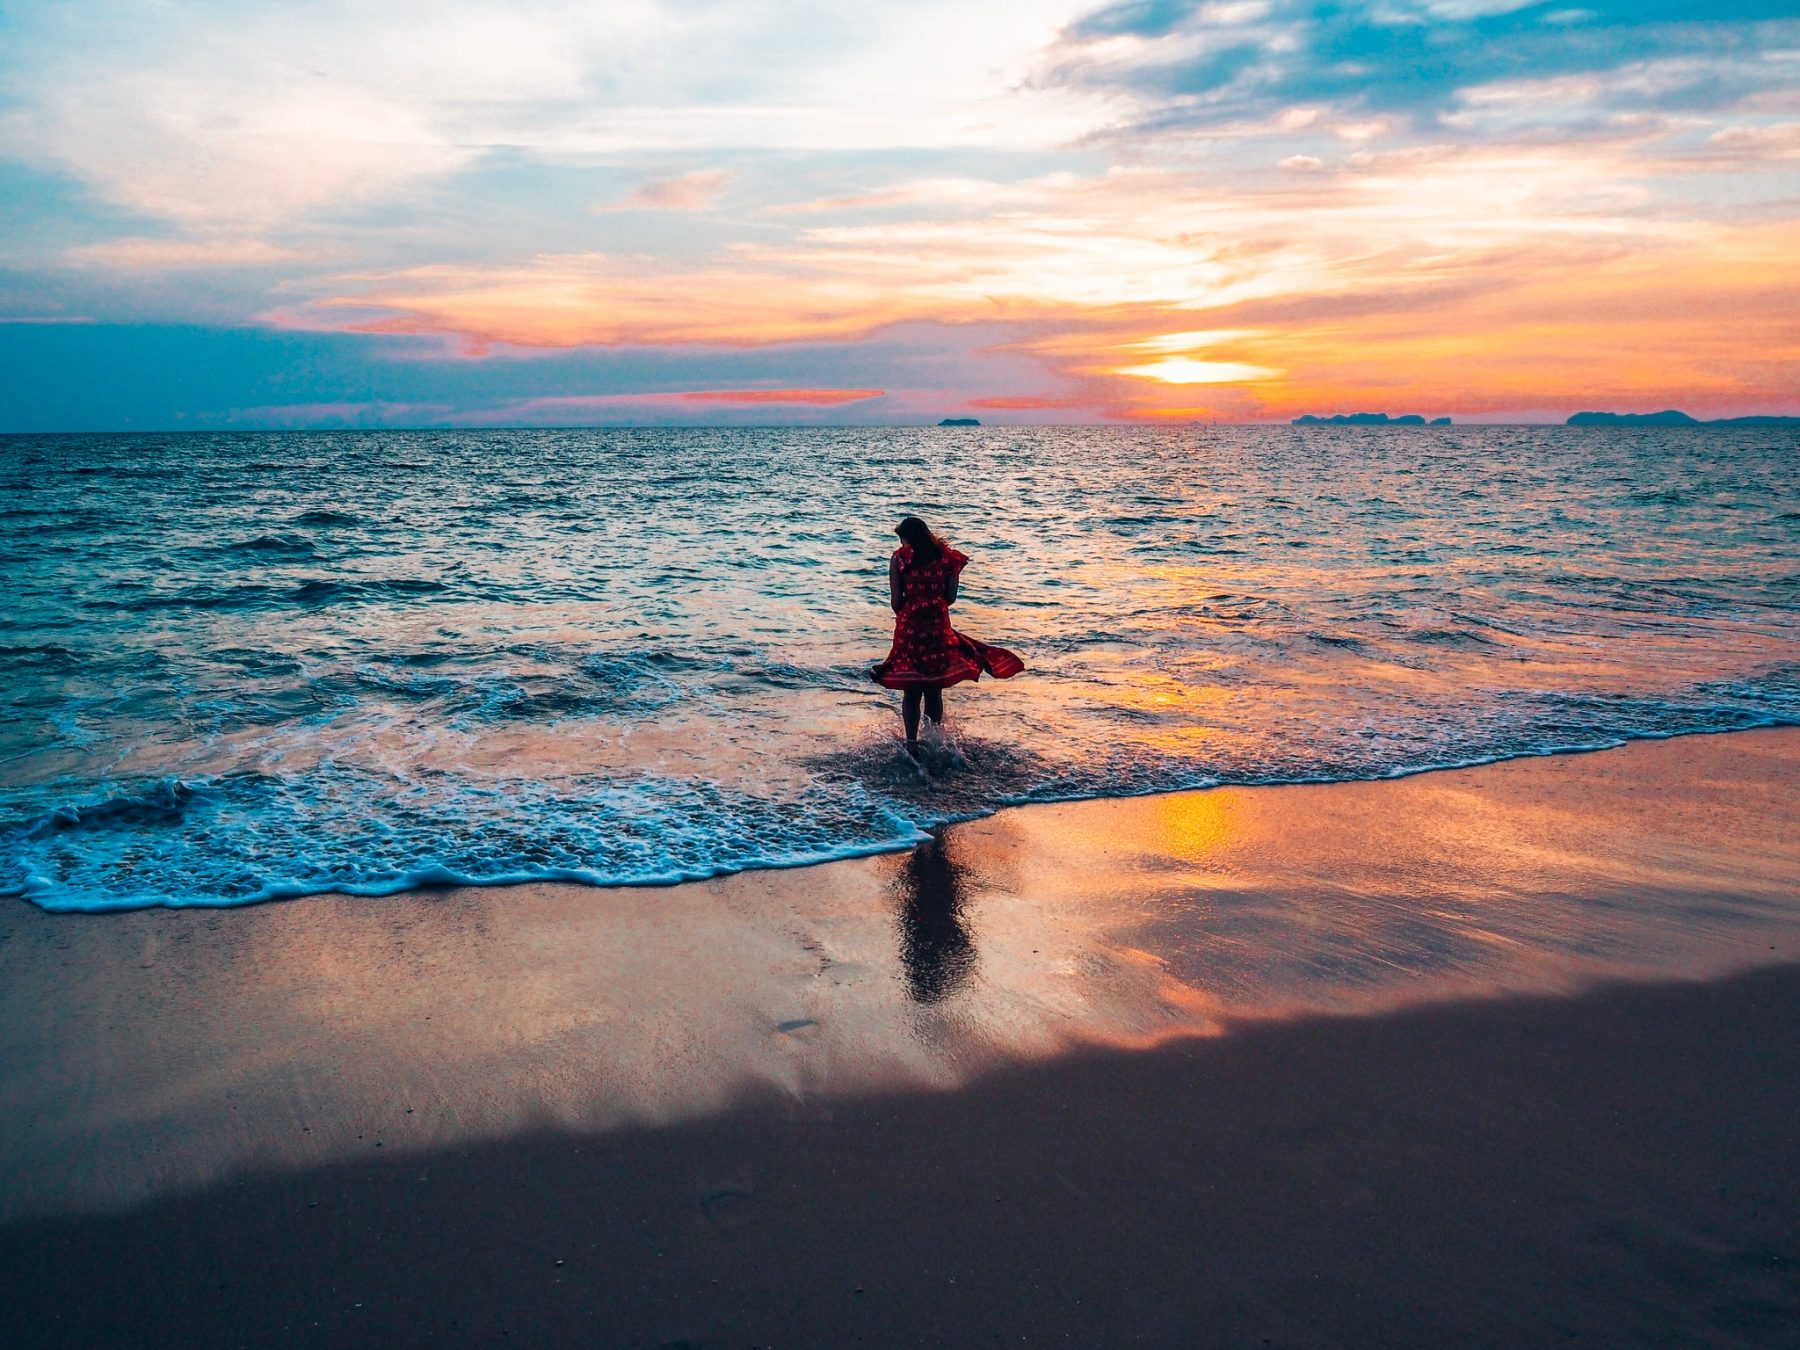 waves at sunset, Thailand, Thailand Koh Lanta beach shots 2019